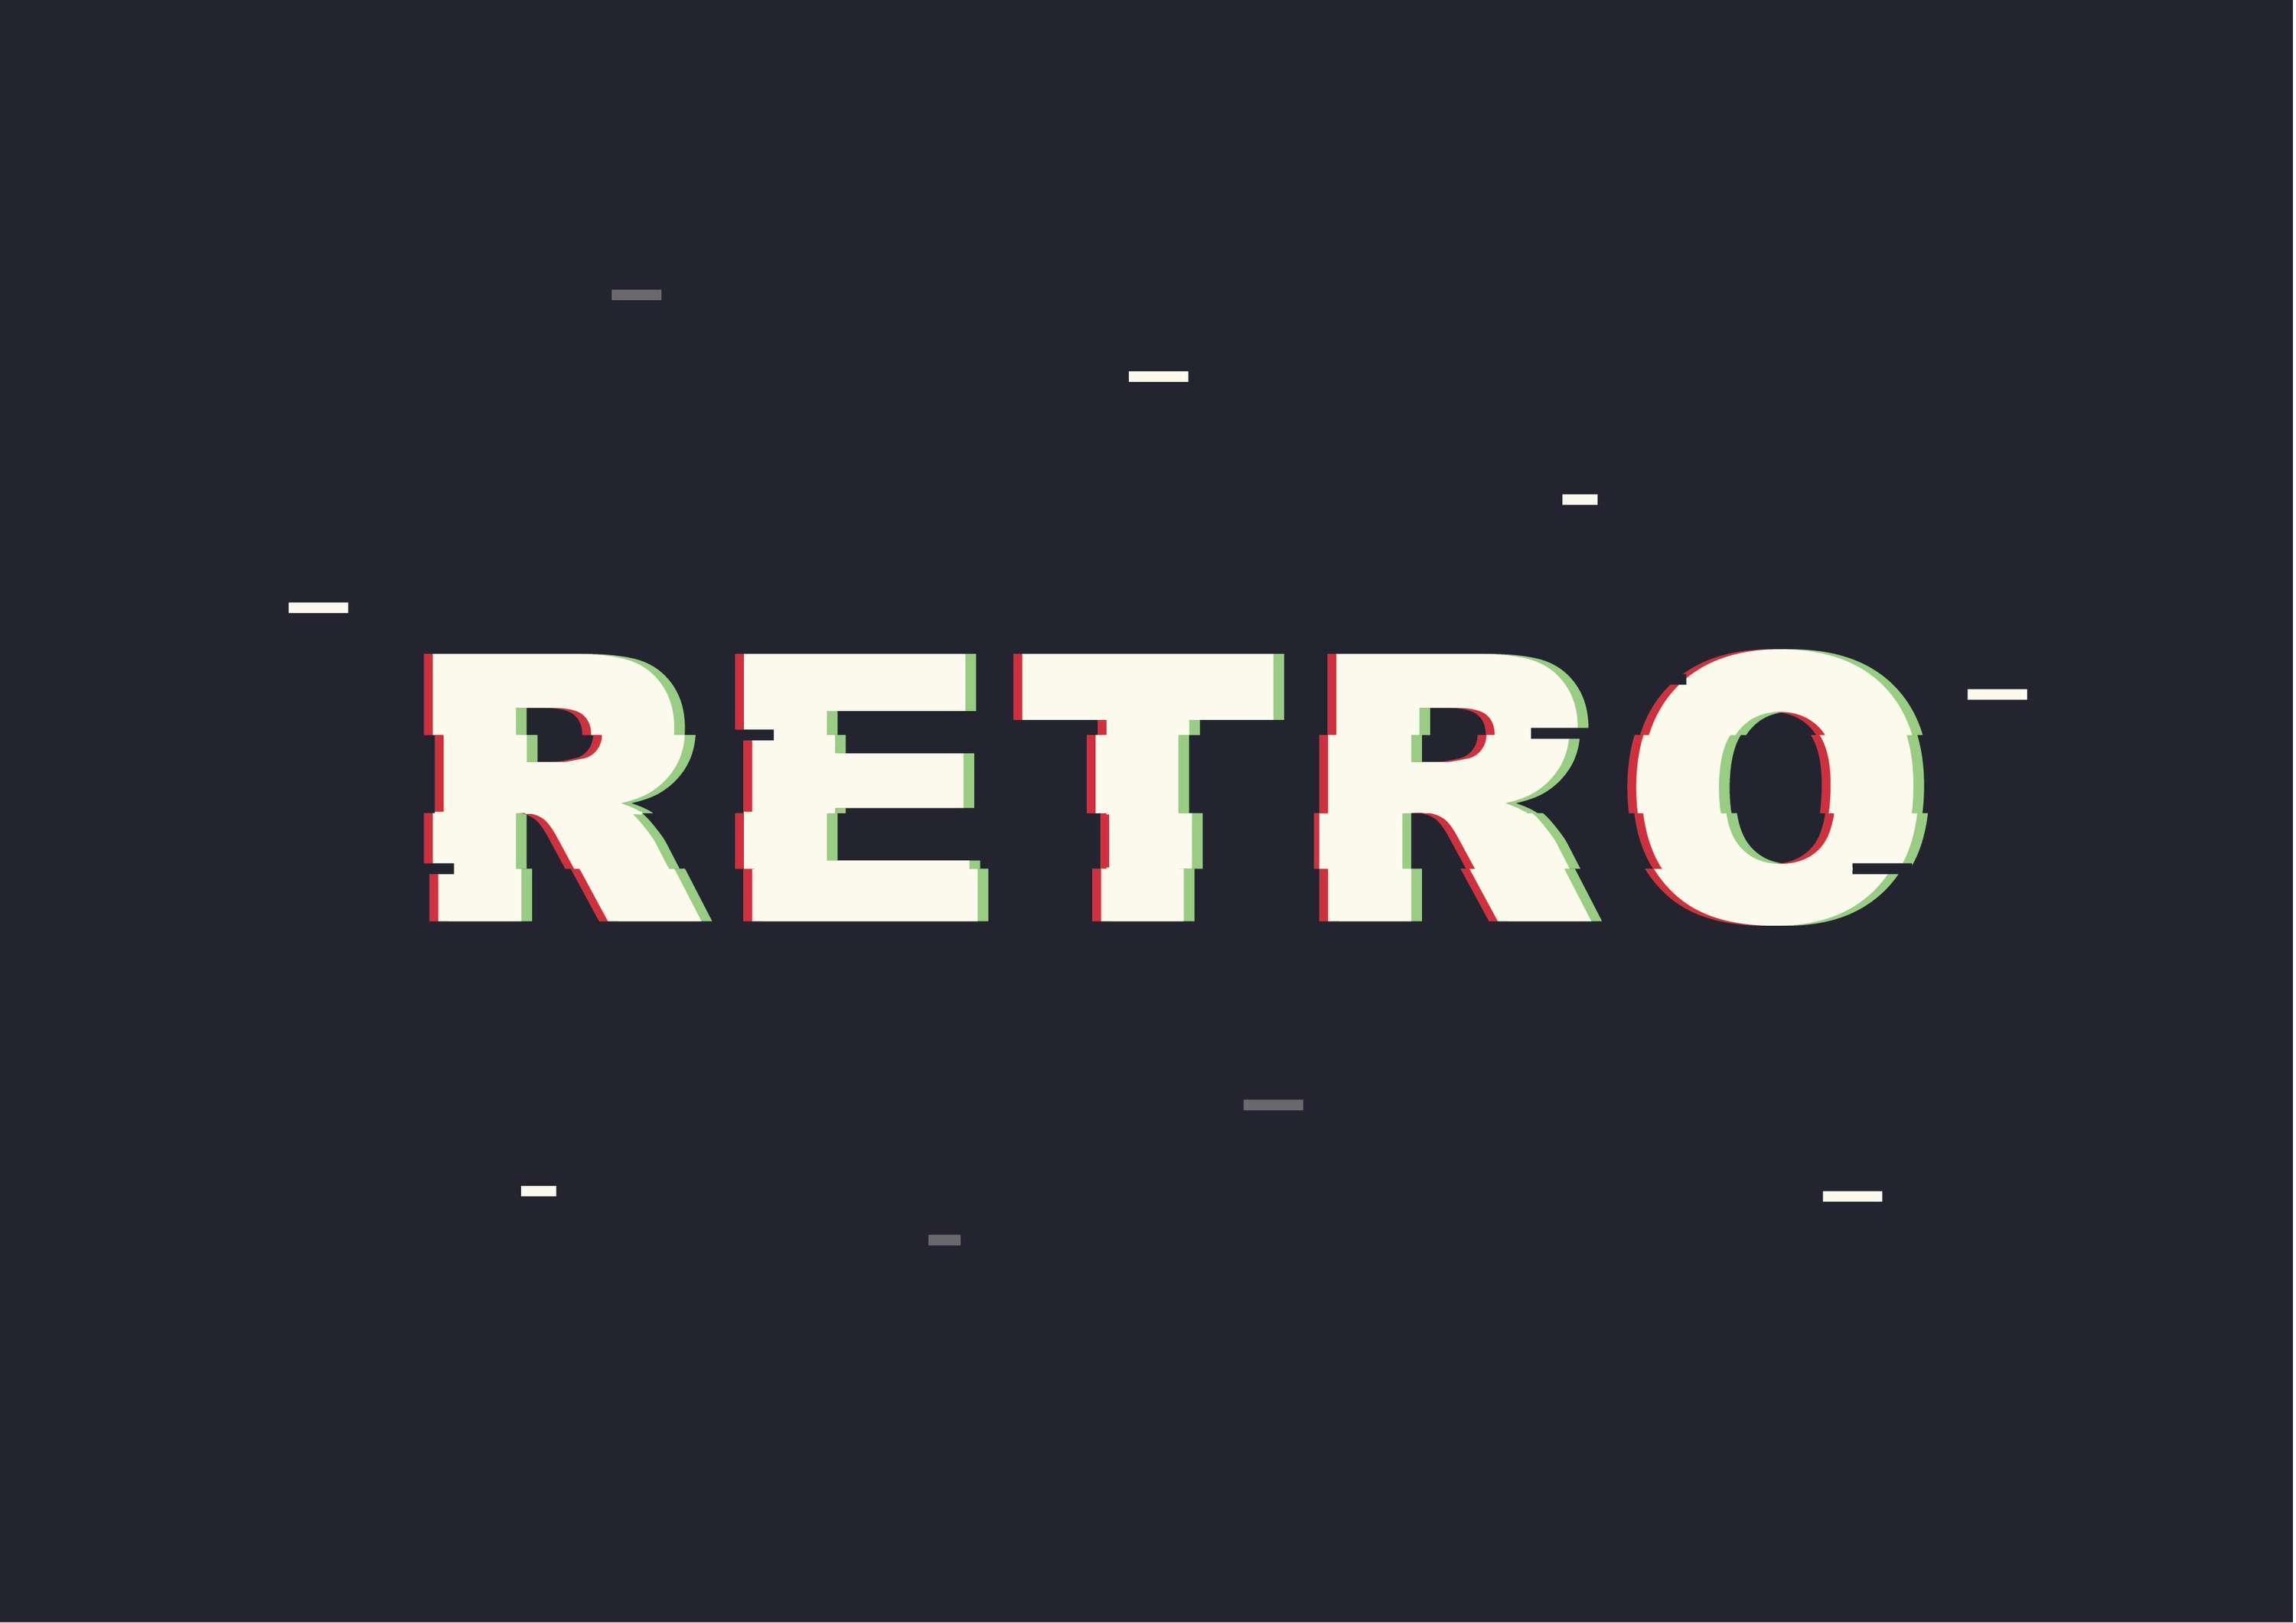 Retro text effect | The Dots